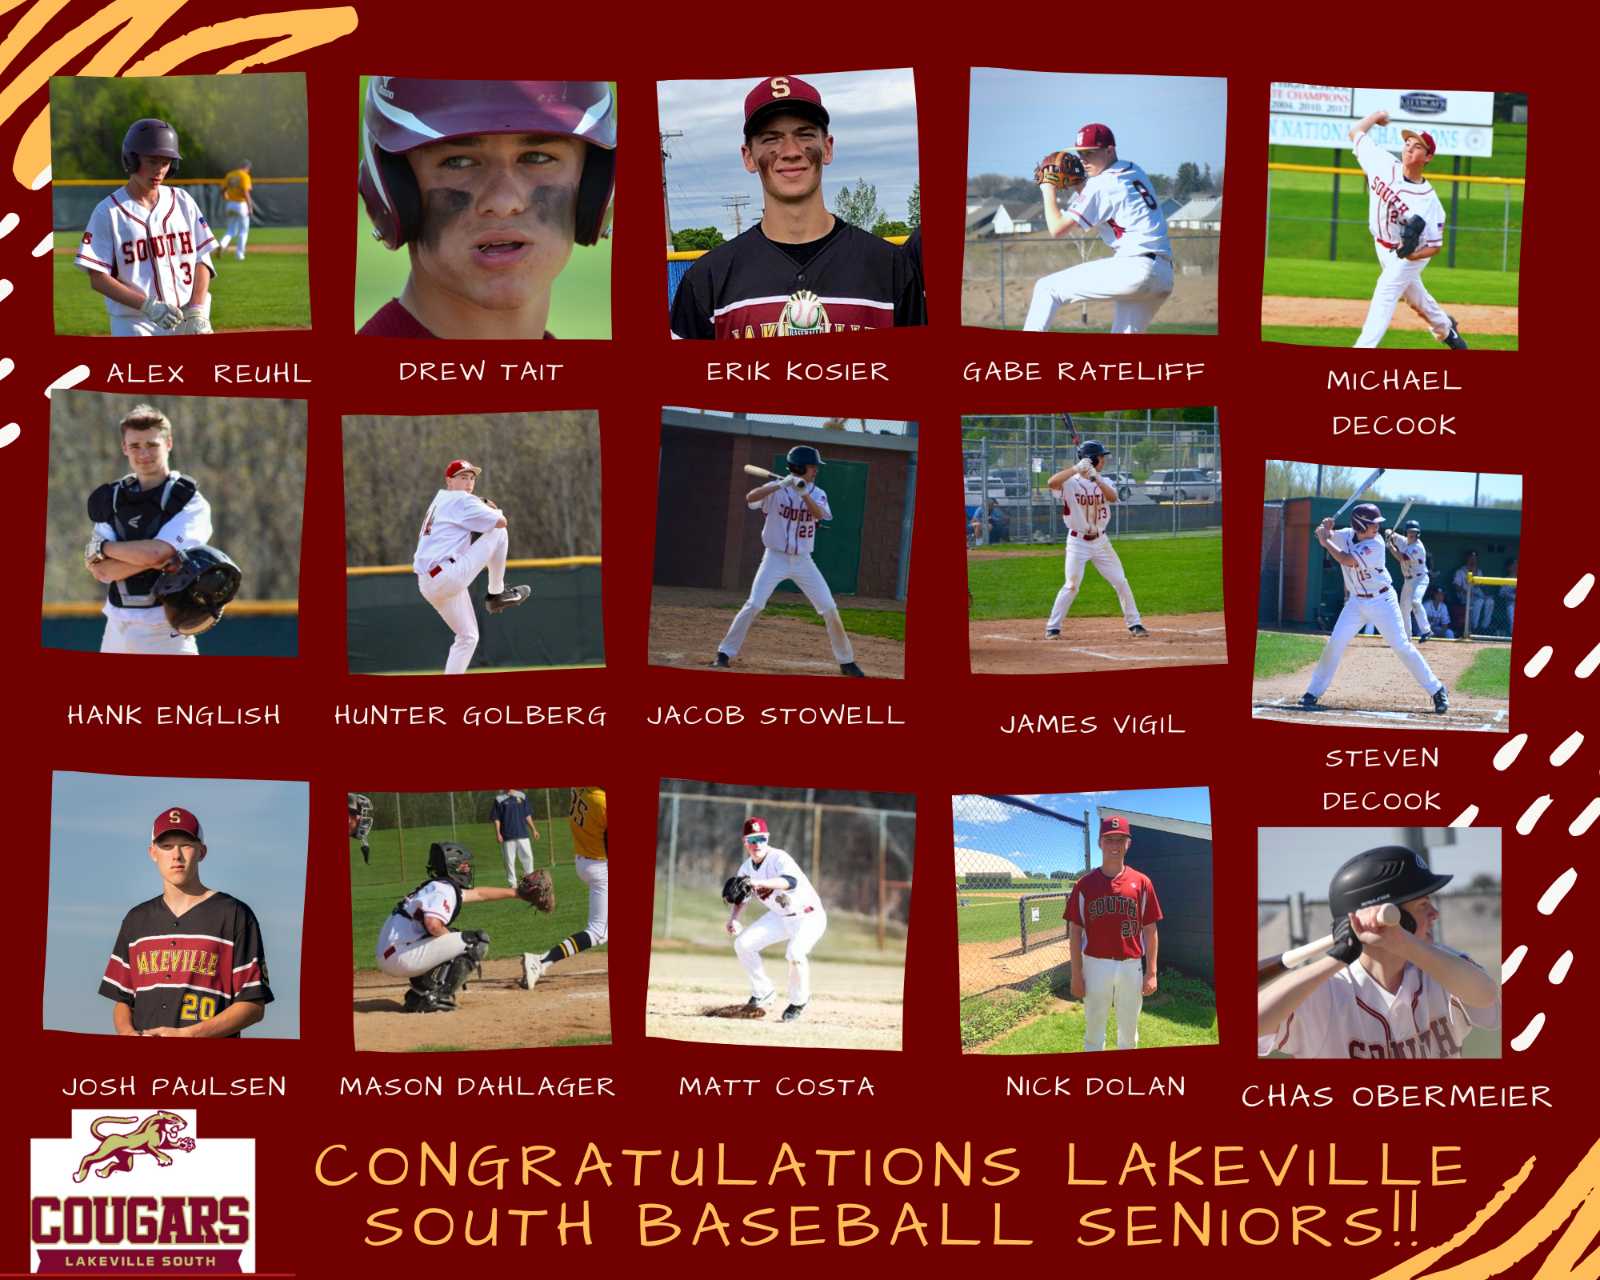 CONGRATULATIONS to the Senior Baseball Players